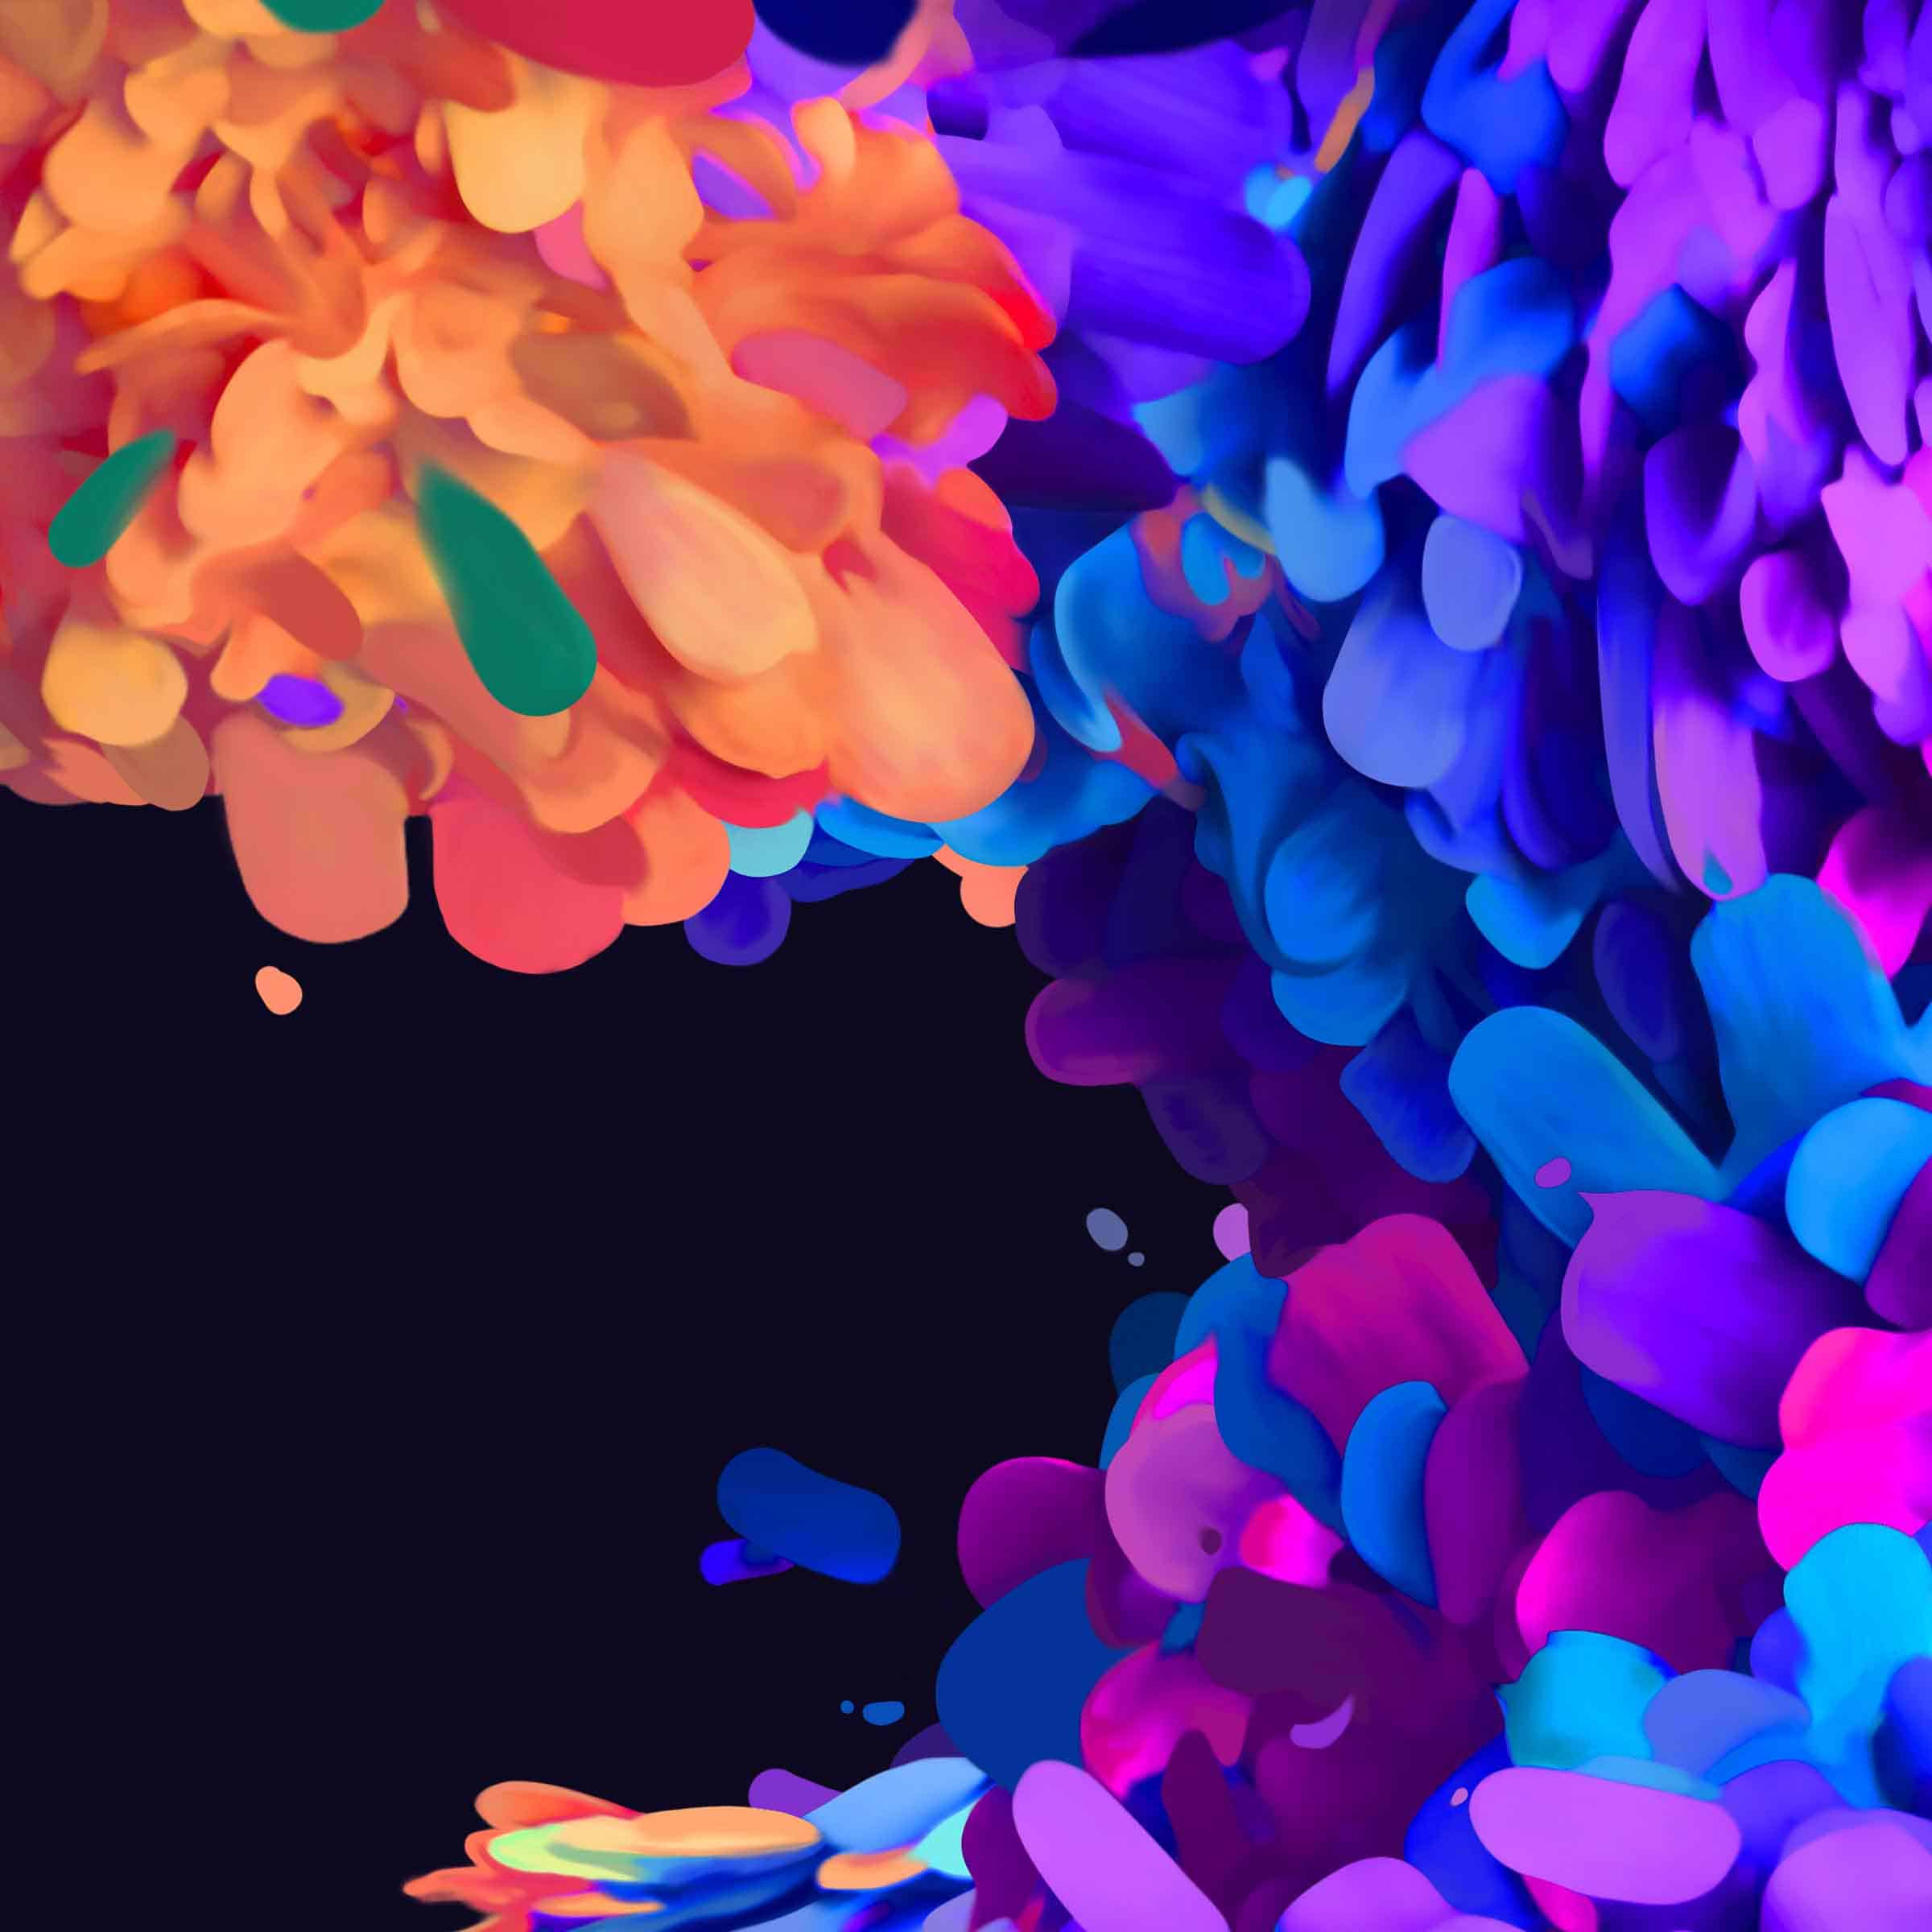 Samsung Galaxy S20 Fe Wallpapers Leak Ahead Of Launch